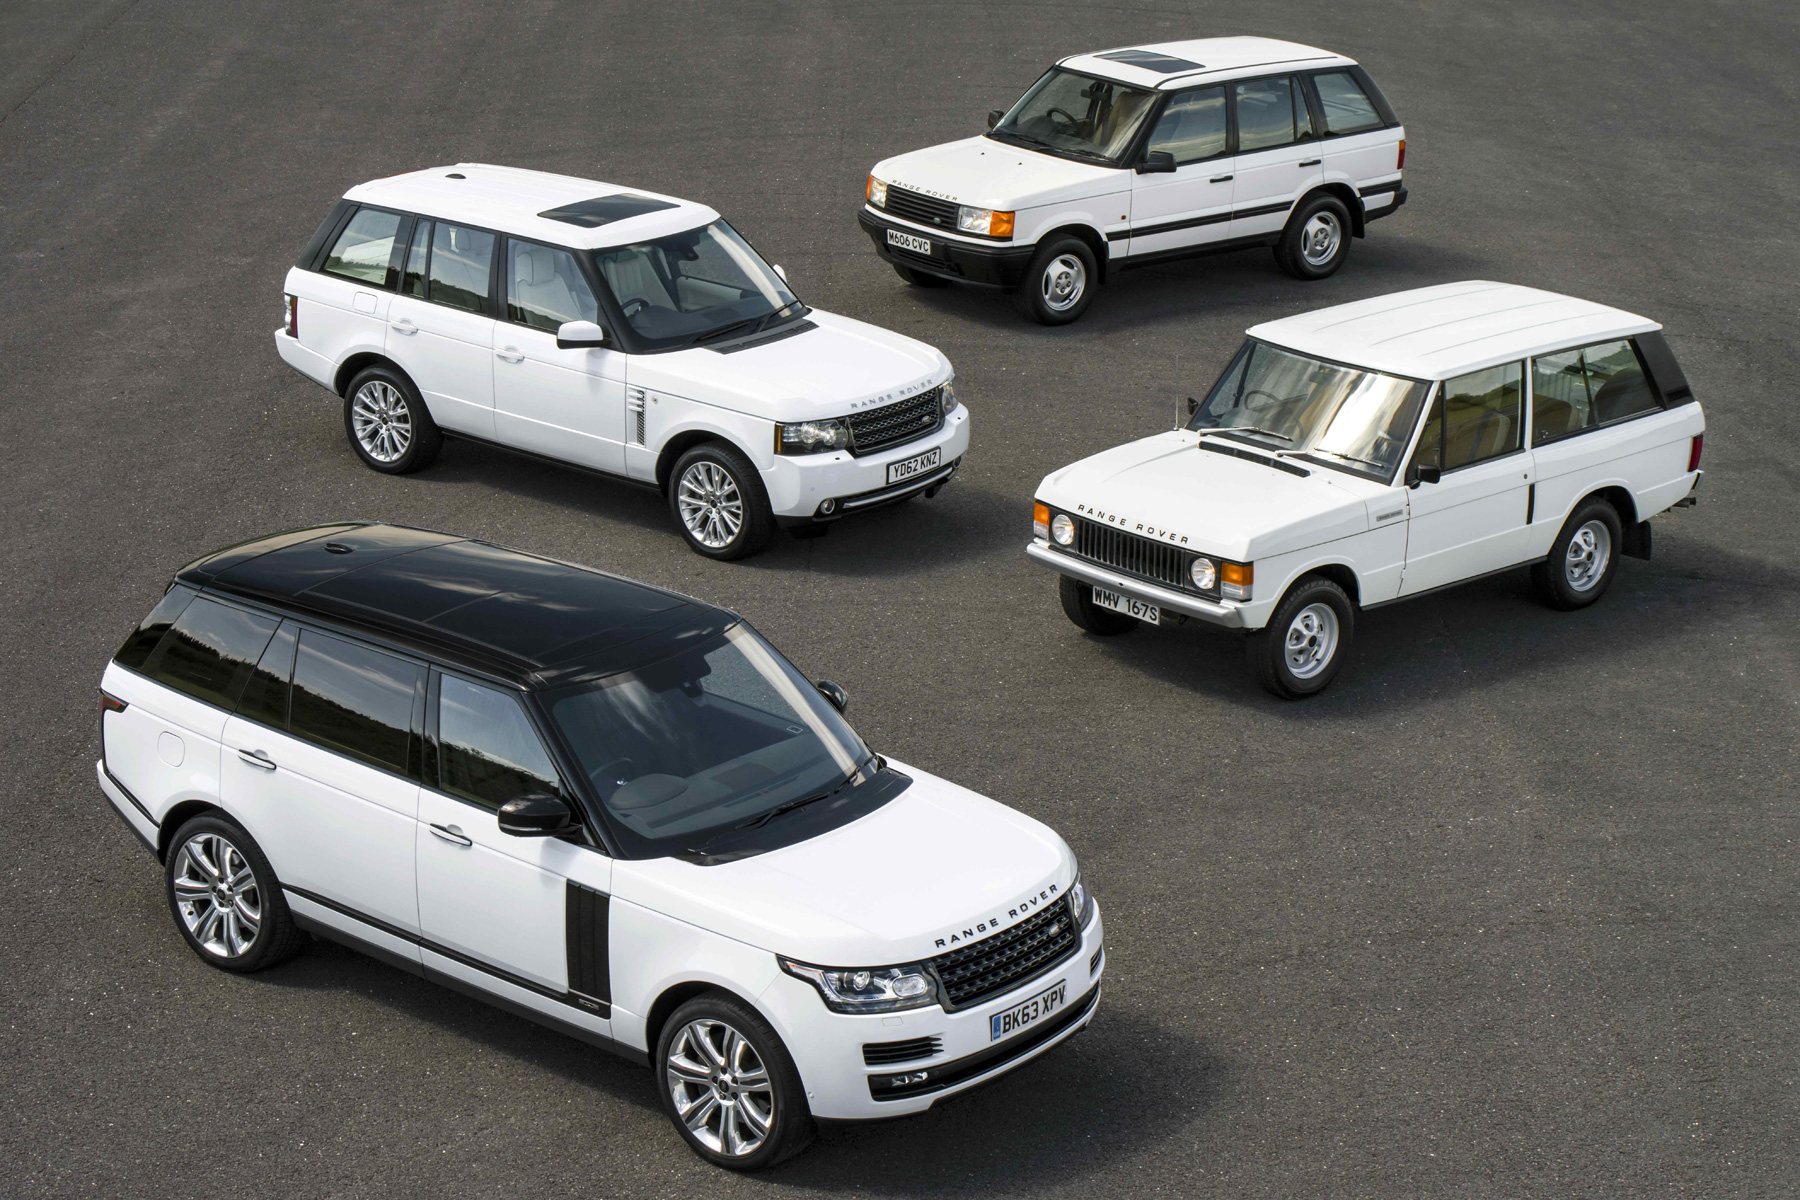 The future of the Range Rover